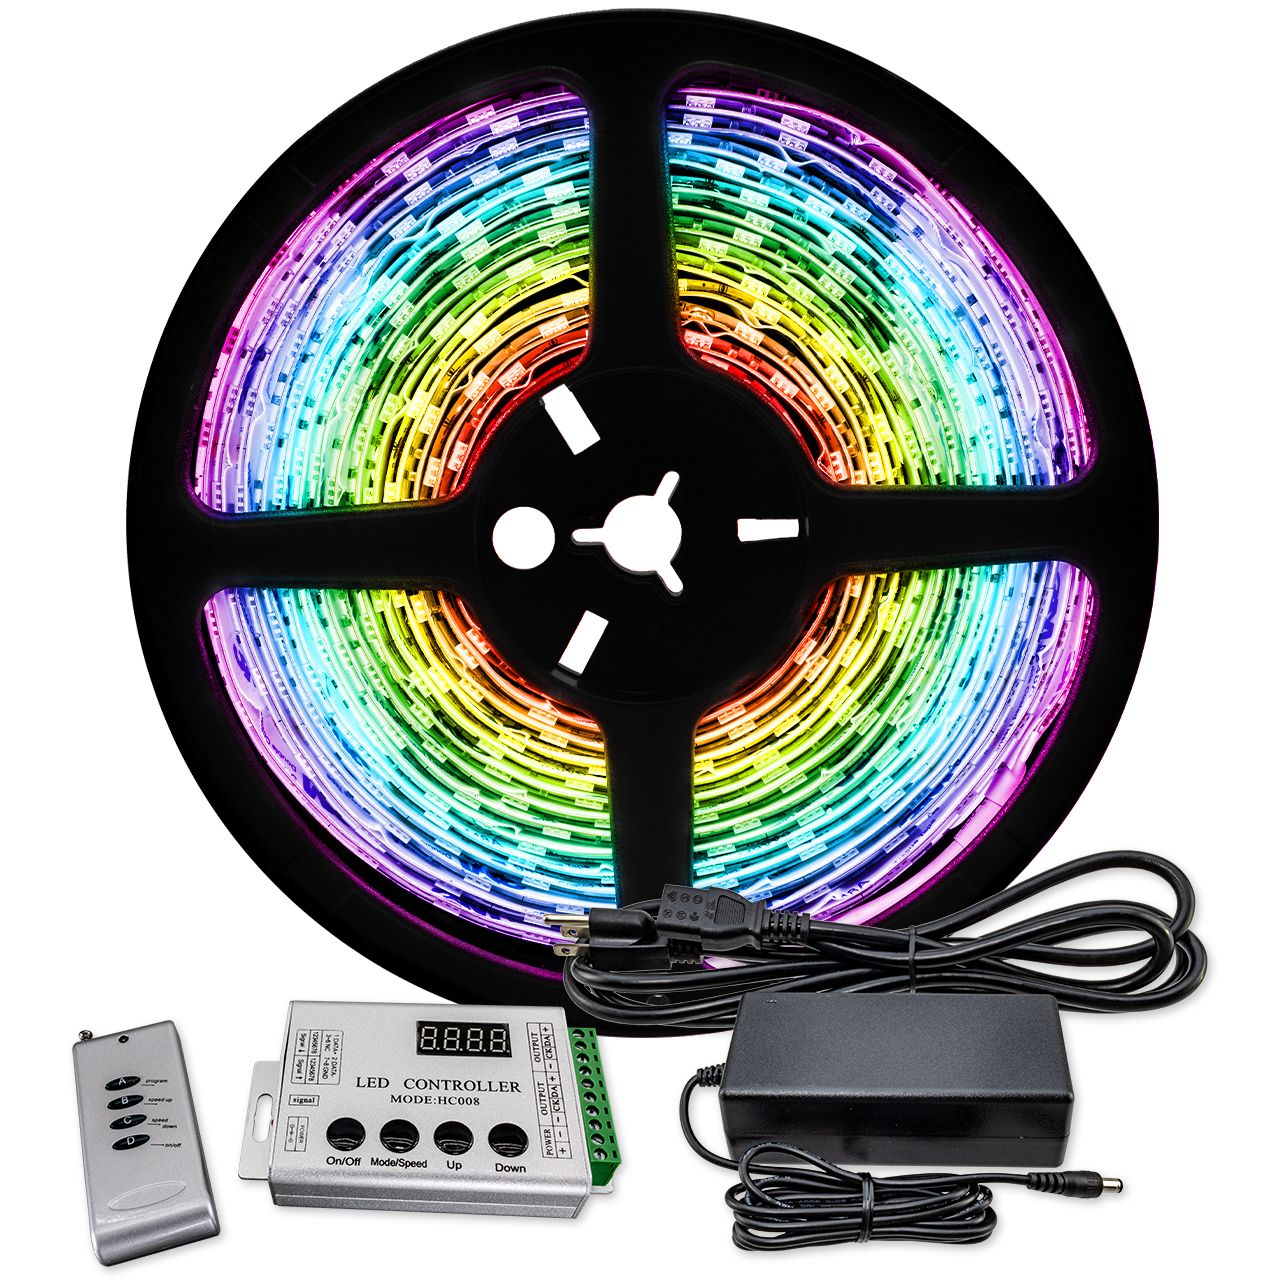 Rgb Color Changing Chasing Led Strip Light 12 Volt High Output Smd 5050 Outdoor Use Ip67 In 2020 Strip Lighting Led Color Changing Lights Led Strip Lighting